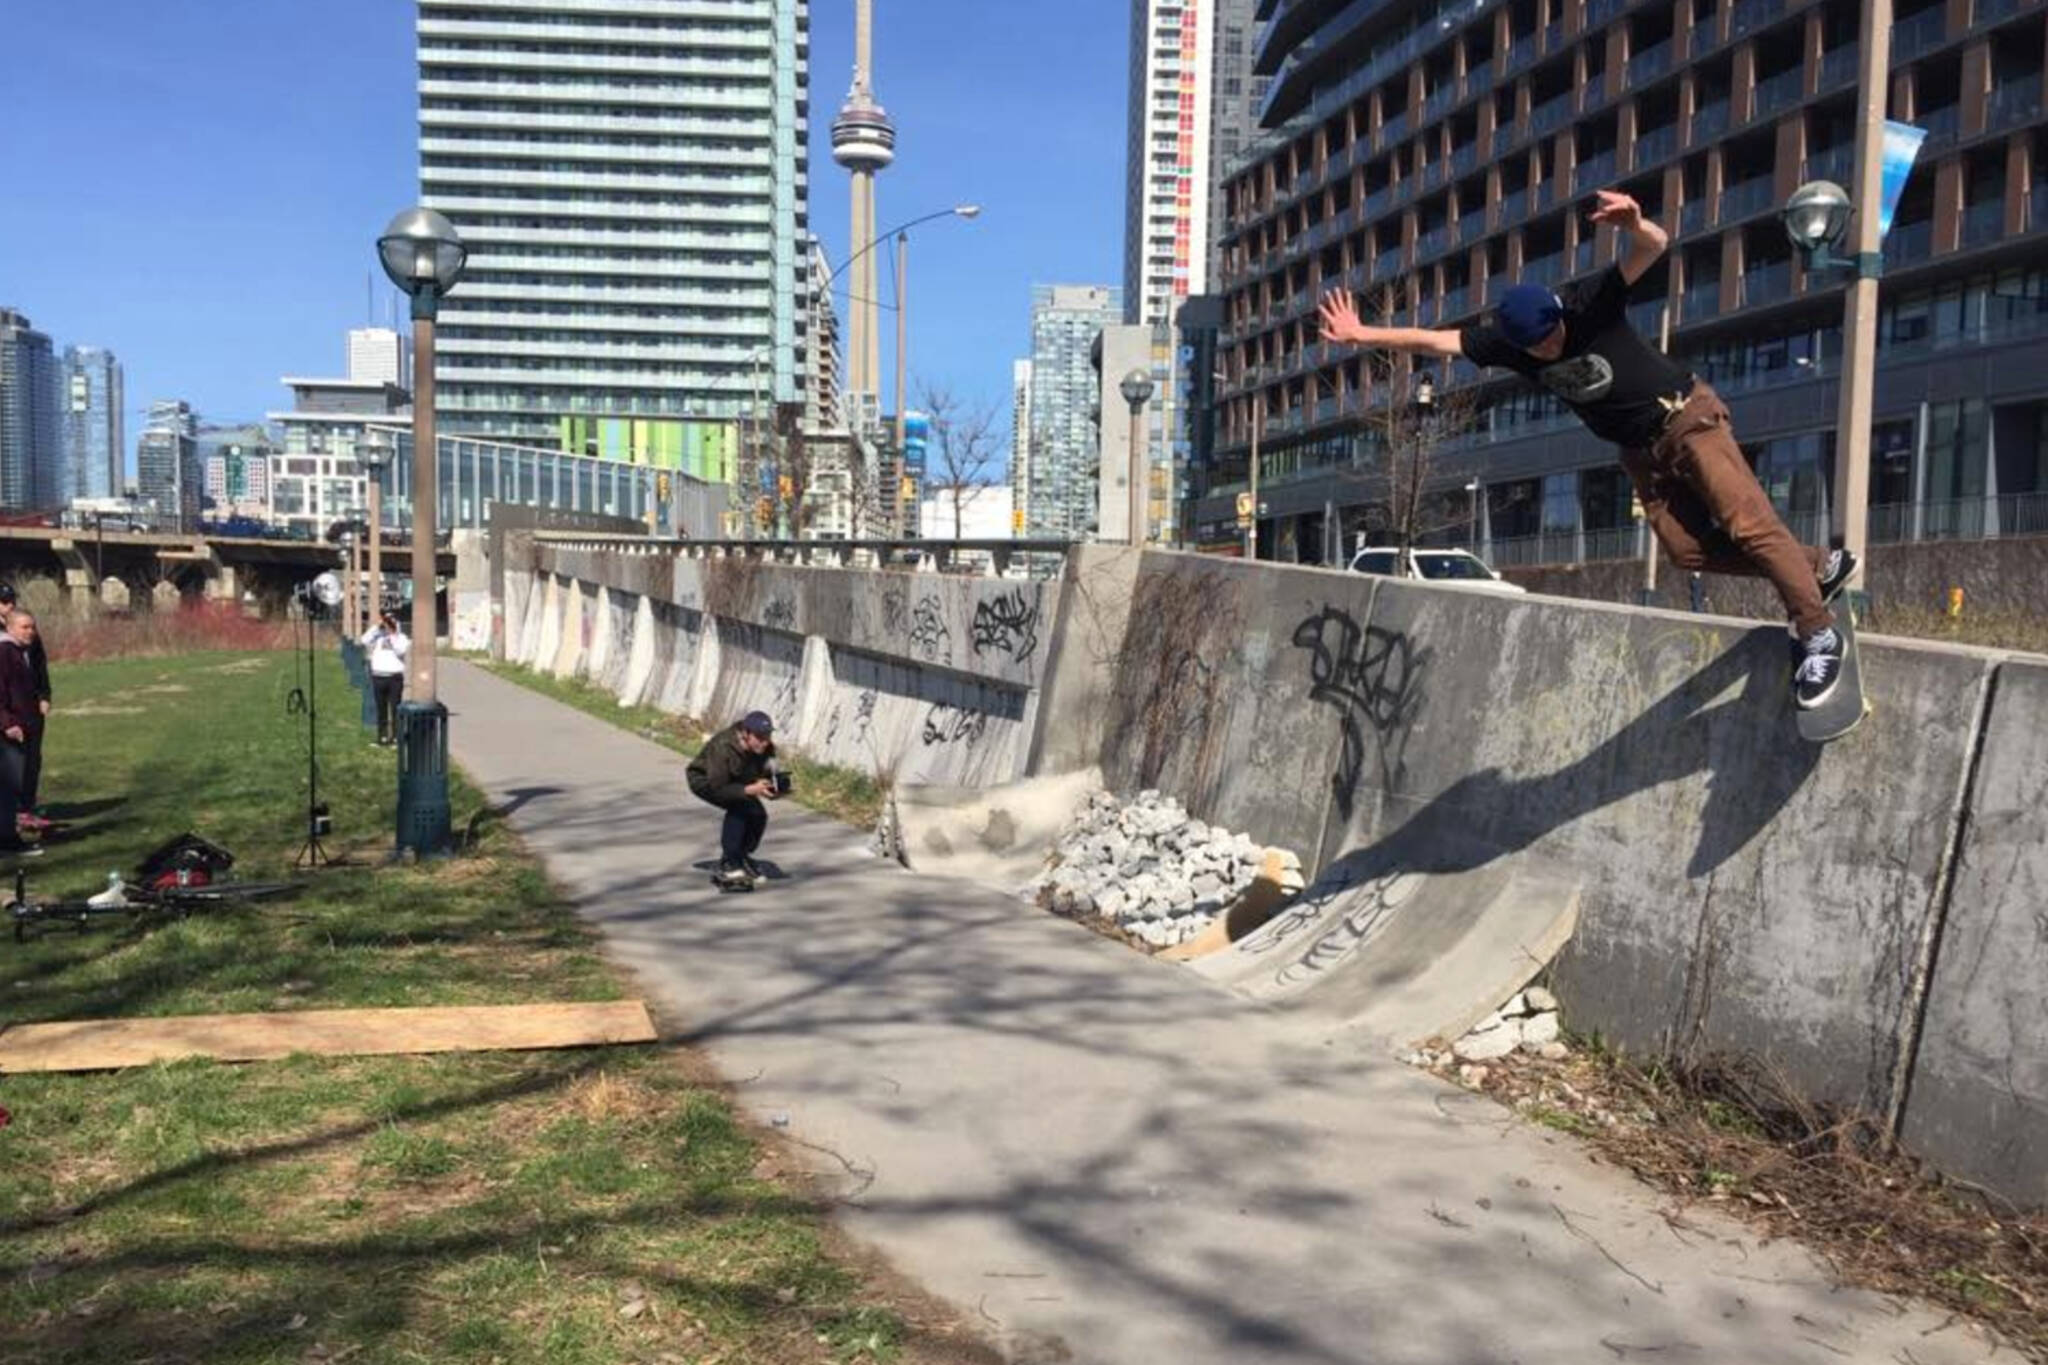 toronto skatepark demolished